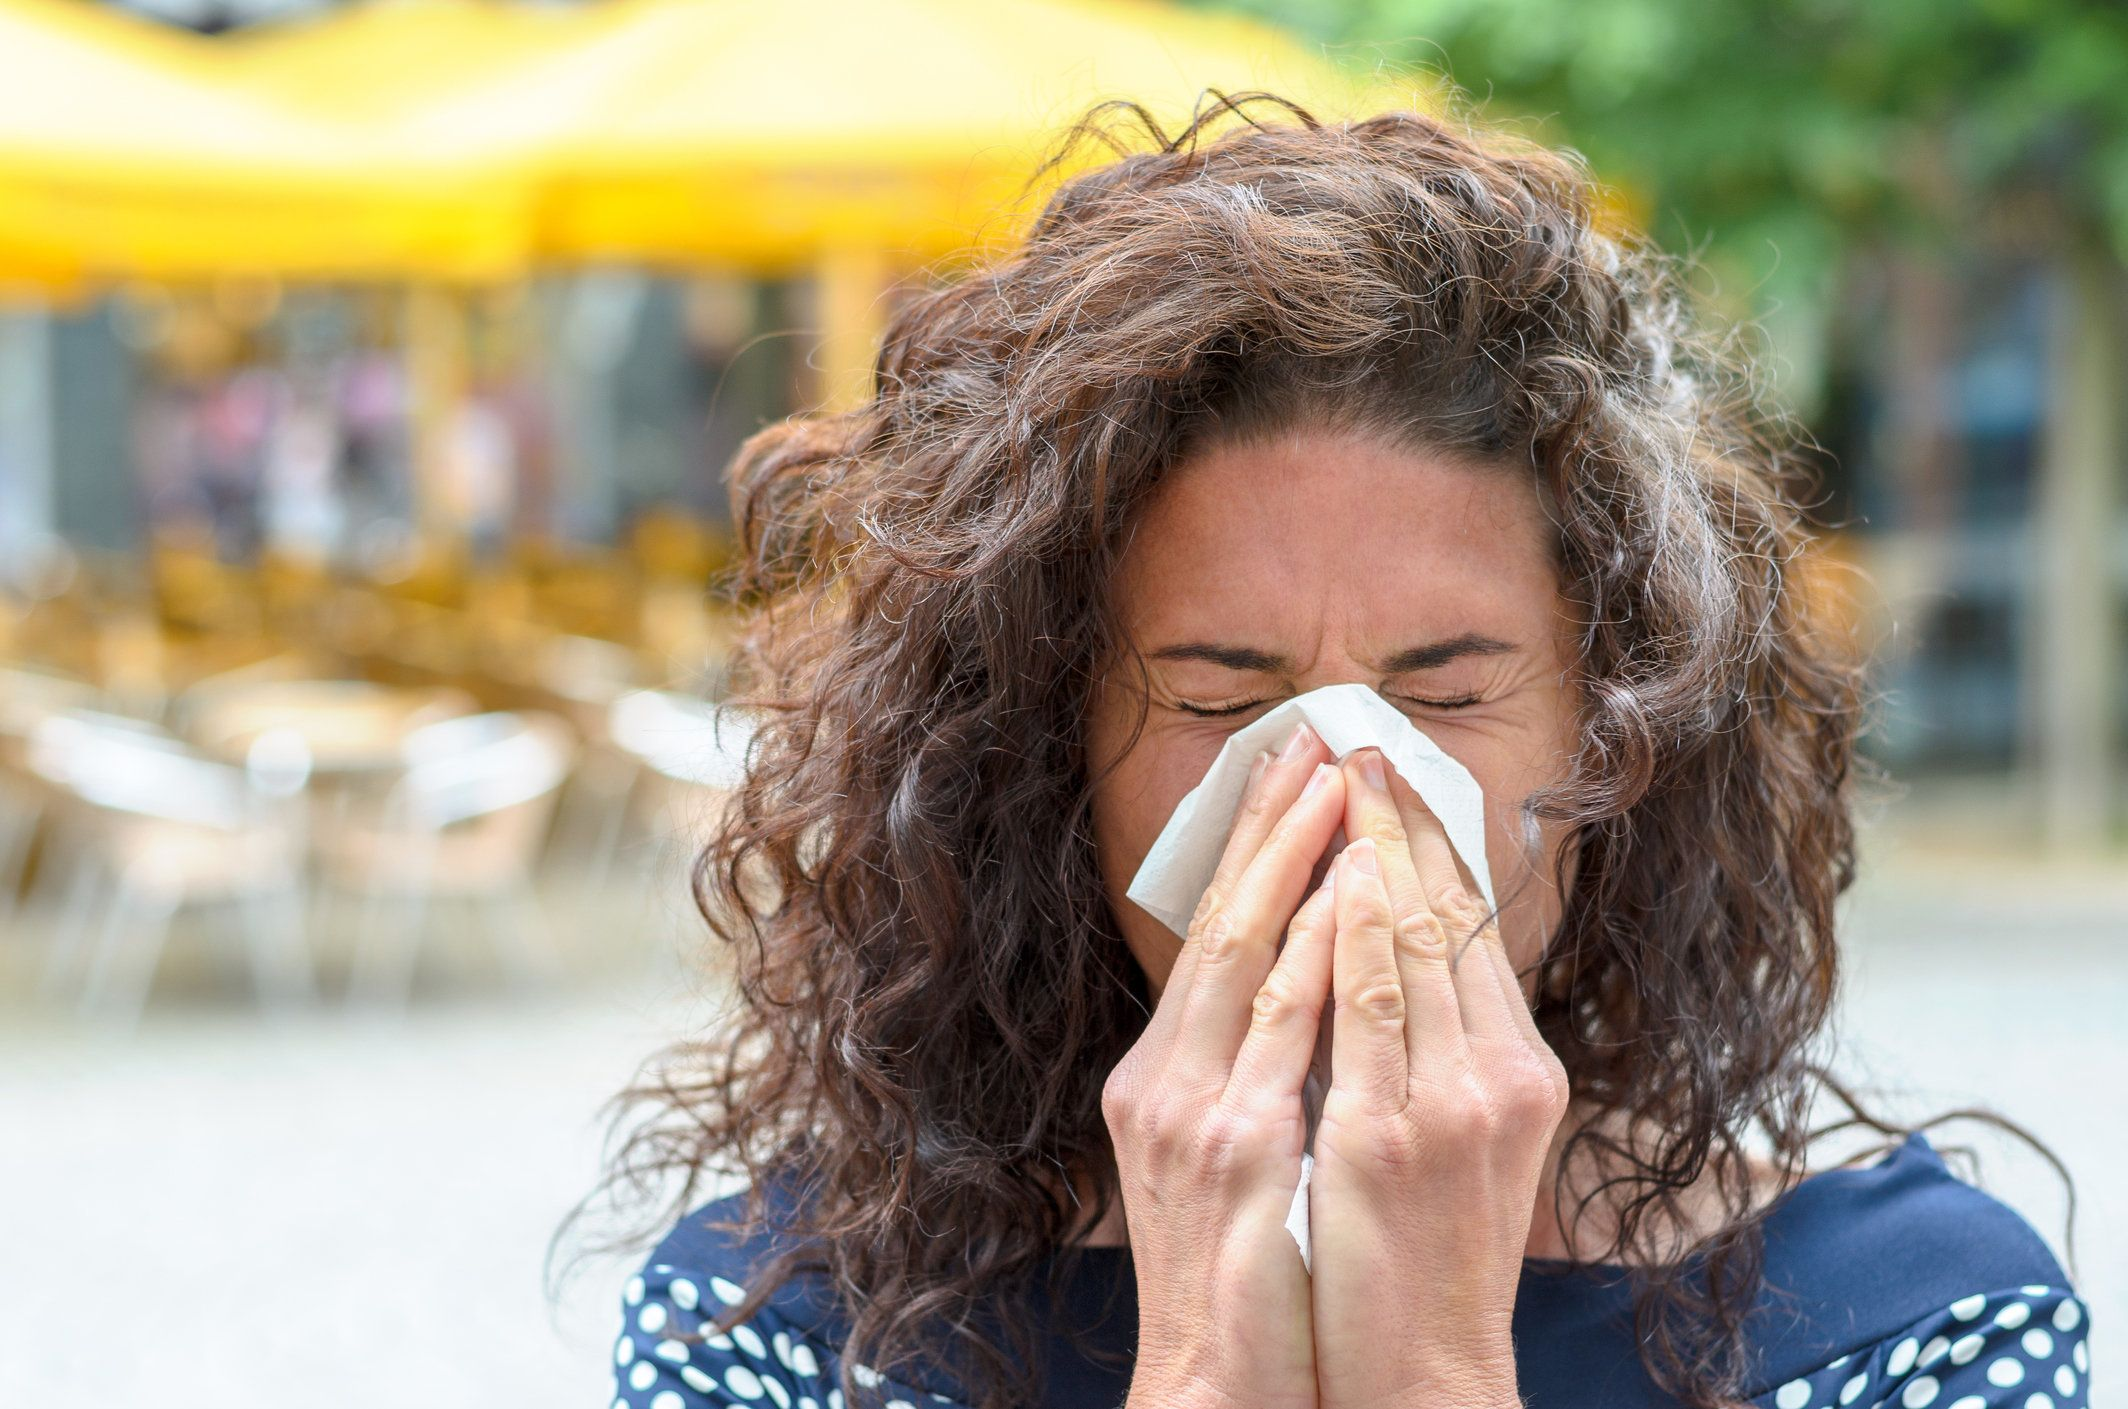 Hay Fever Causes And Treatments Explained